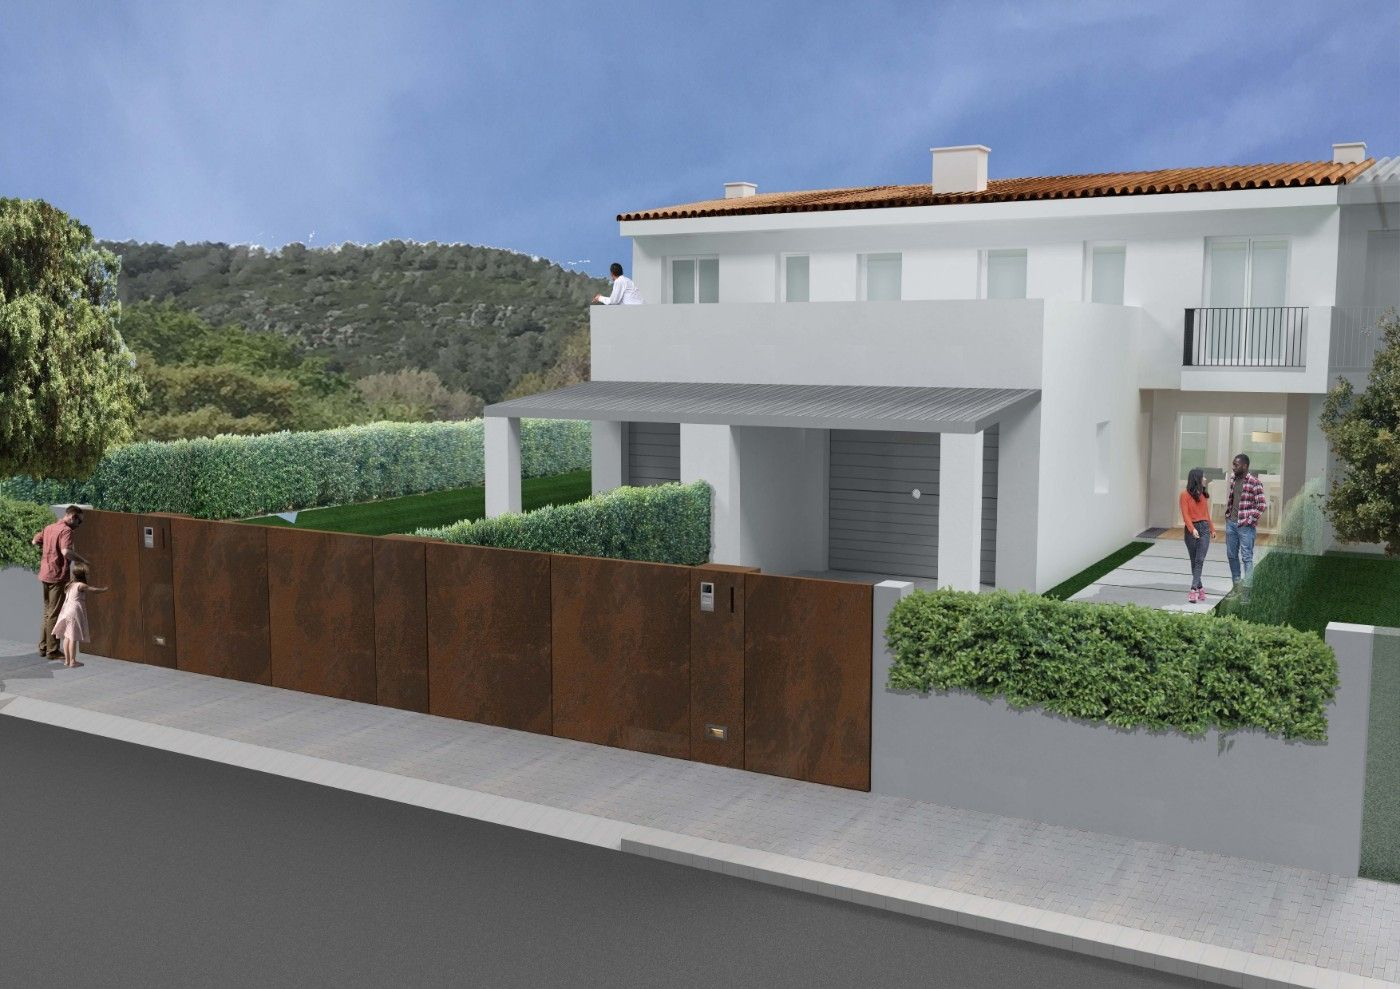 House in Carrer priorat (del), 13. Oportunidad casas en venta